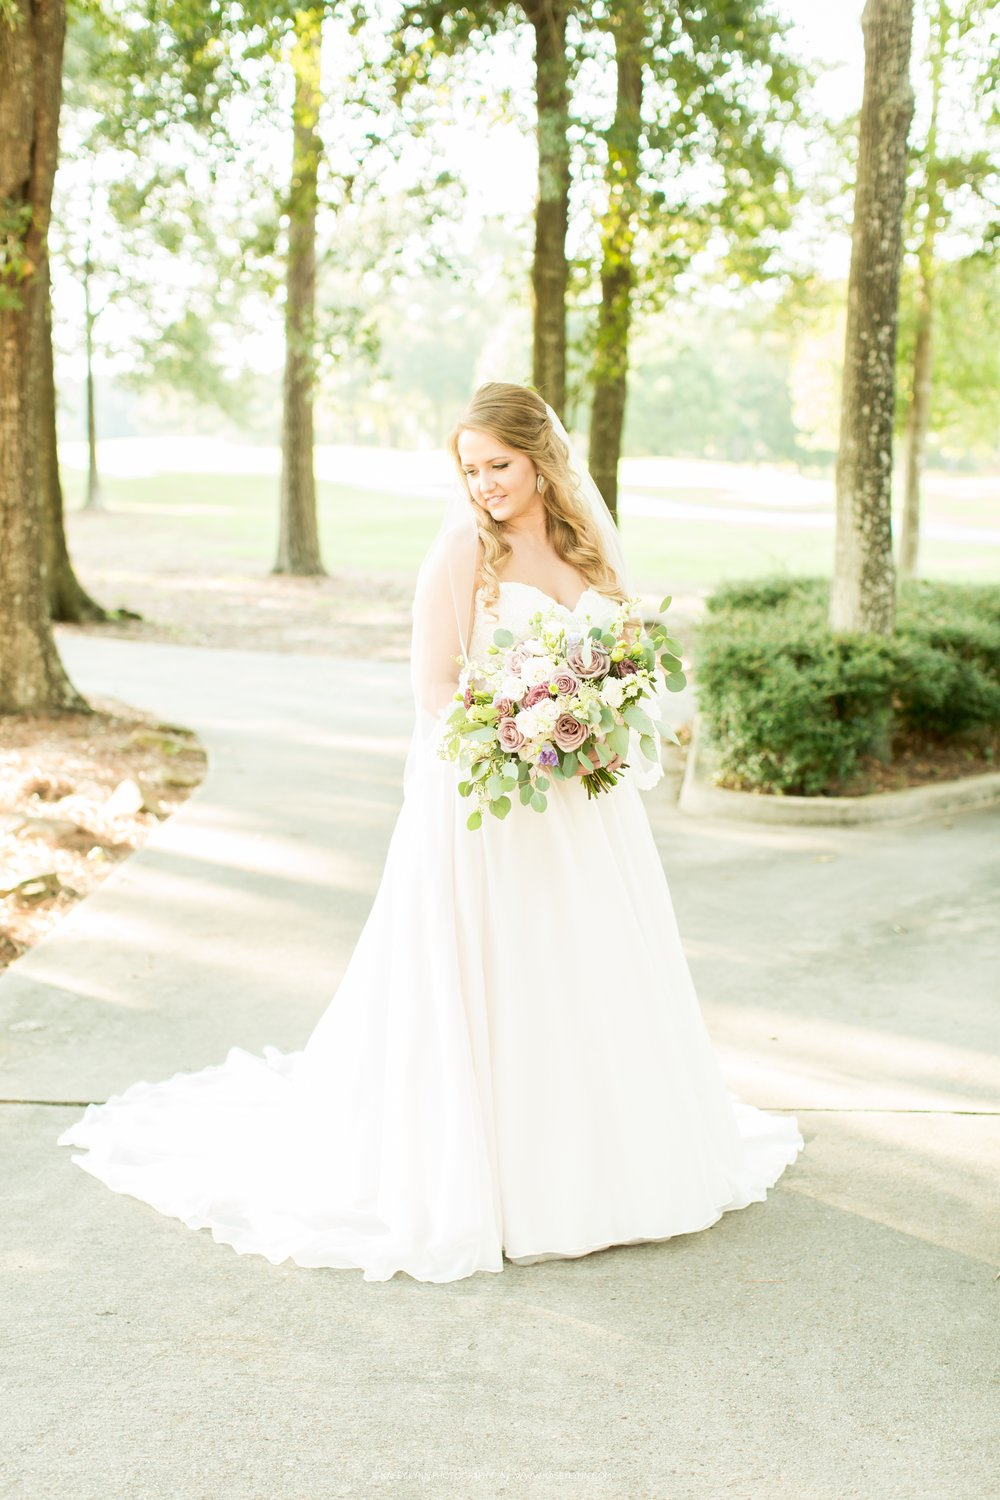 Bridal Portraits in the Woodlands | Houston Wedding Planner